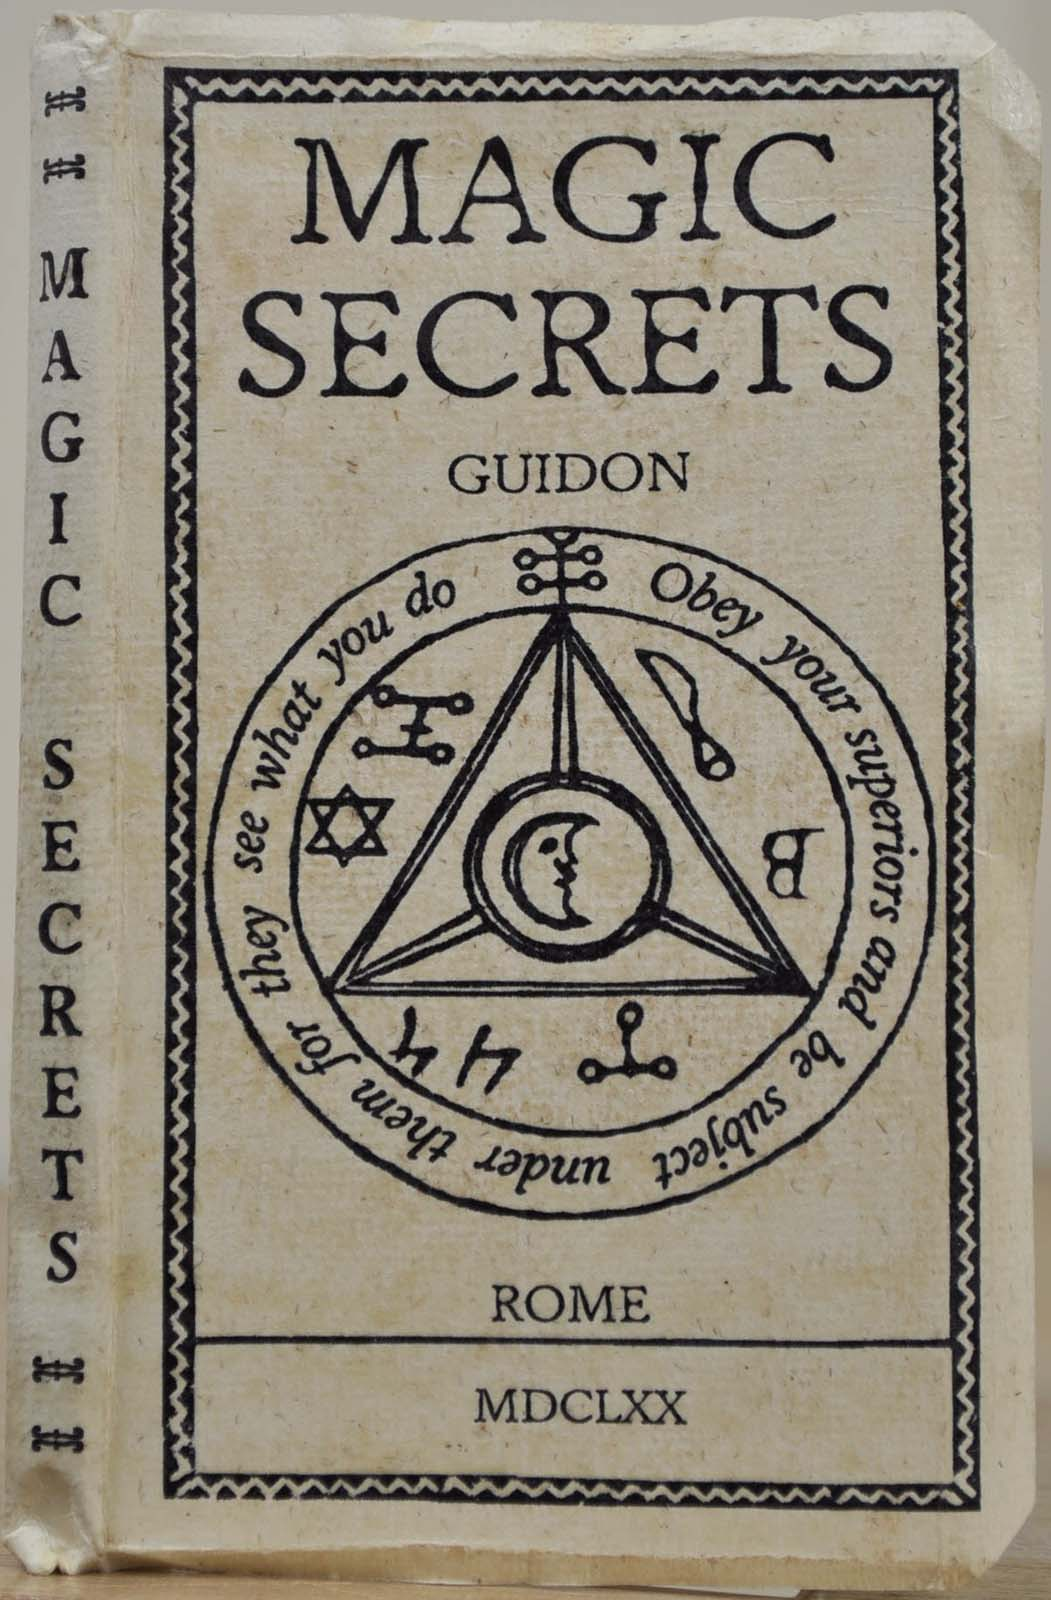 MAGIC SECRETS AND COUNTER-CHARMS OF GUIDON  Practitioner of Healing by  Occult Means by Guidon on Kurt Gippert Bookseller